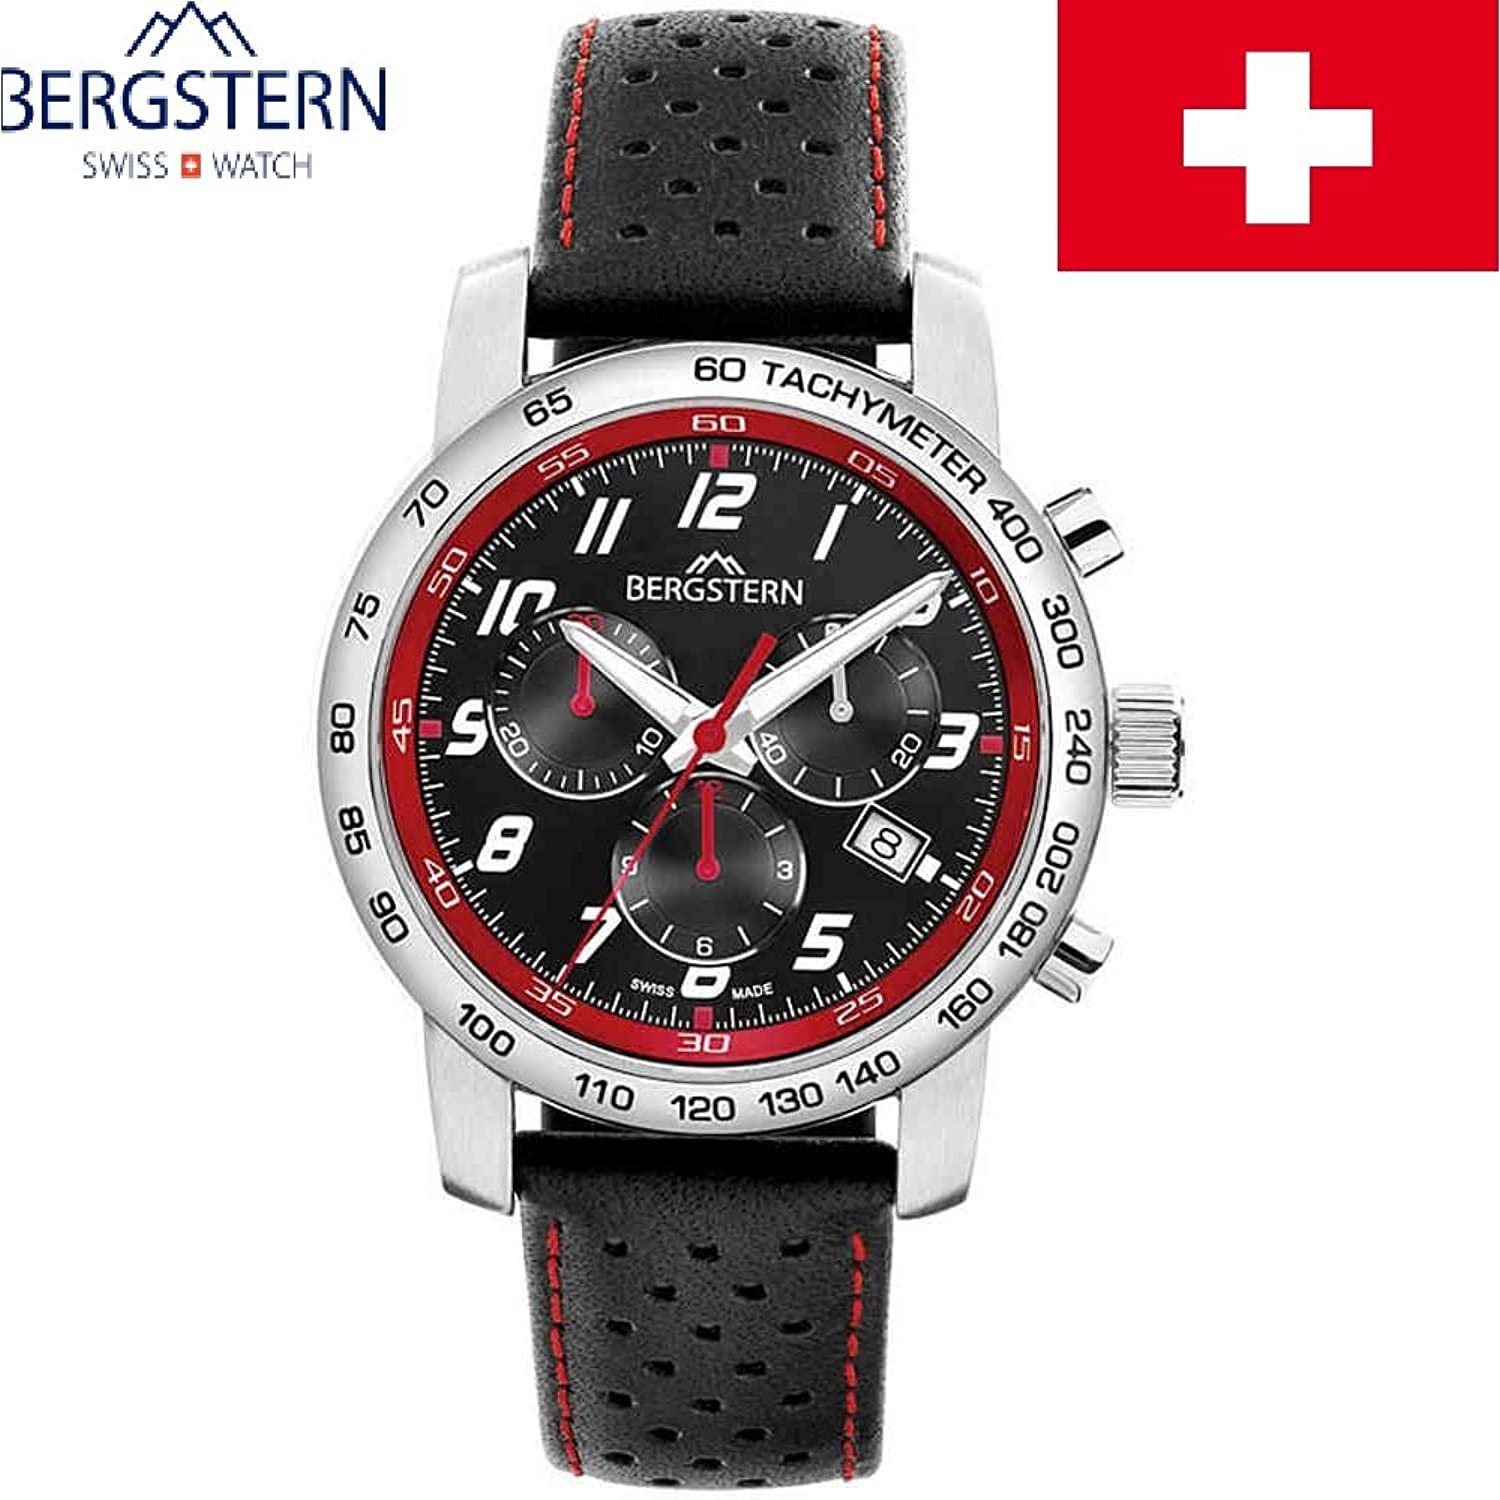 ARMBANDUHR HERREN KOLLEKTION ACTIVE BERGSTERN B020G103 whatch SWISS MADE hoher QualitÄt MADE IN SVIZZERA.Cinturino